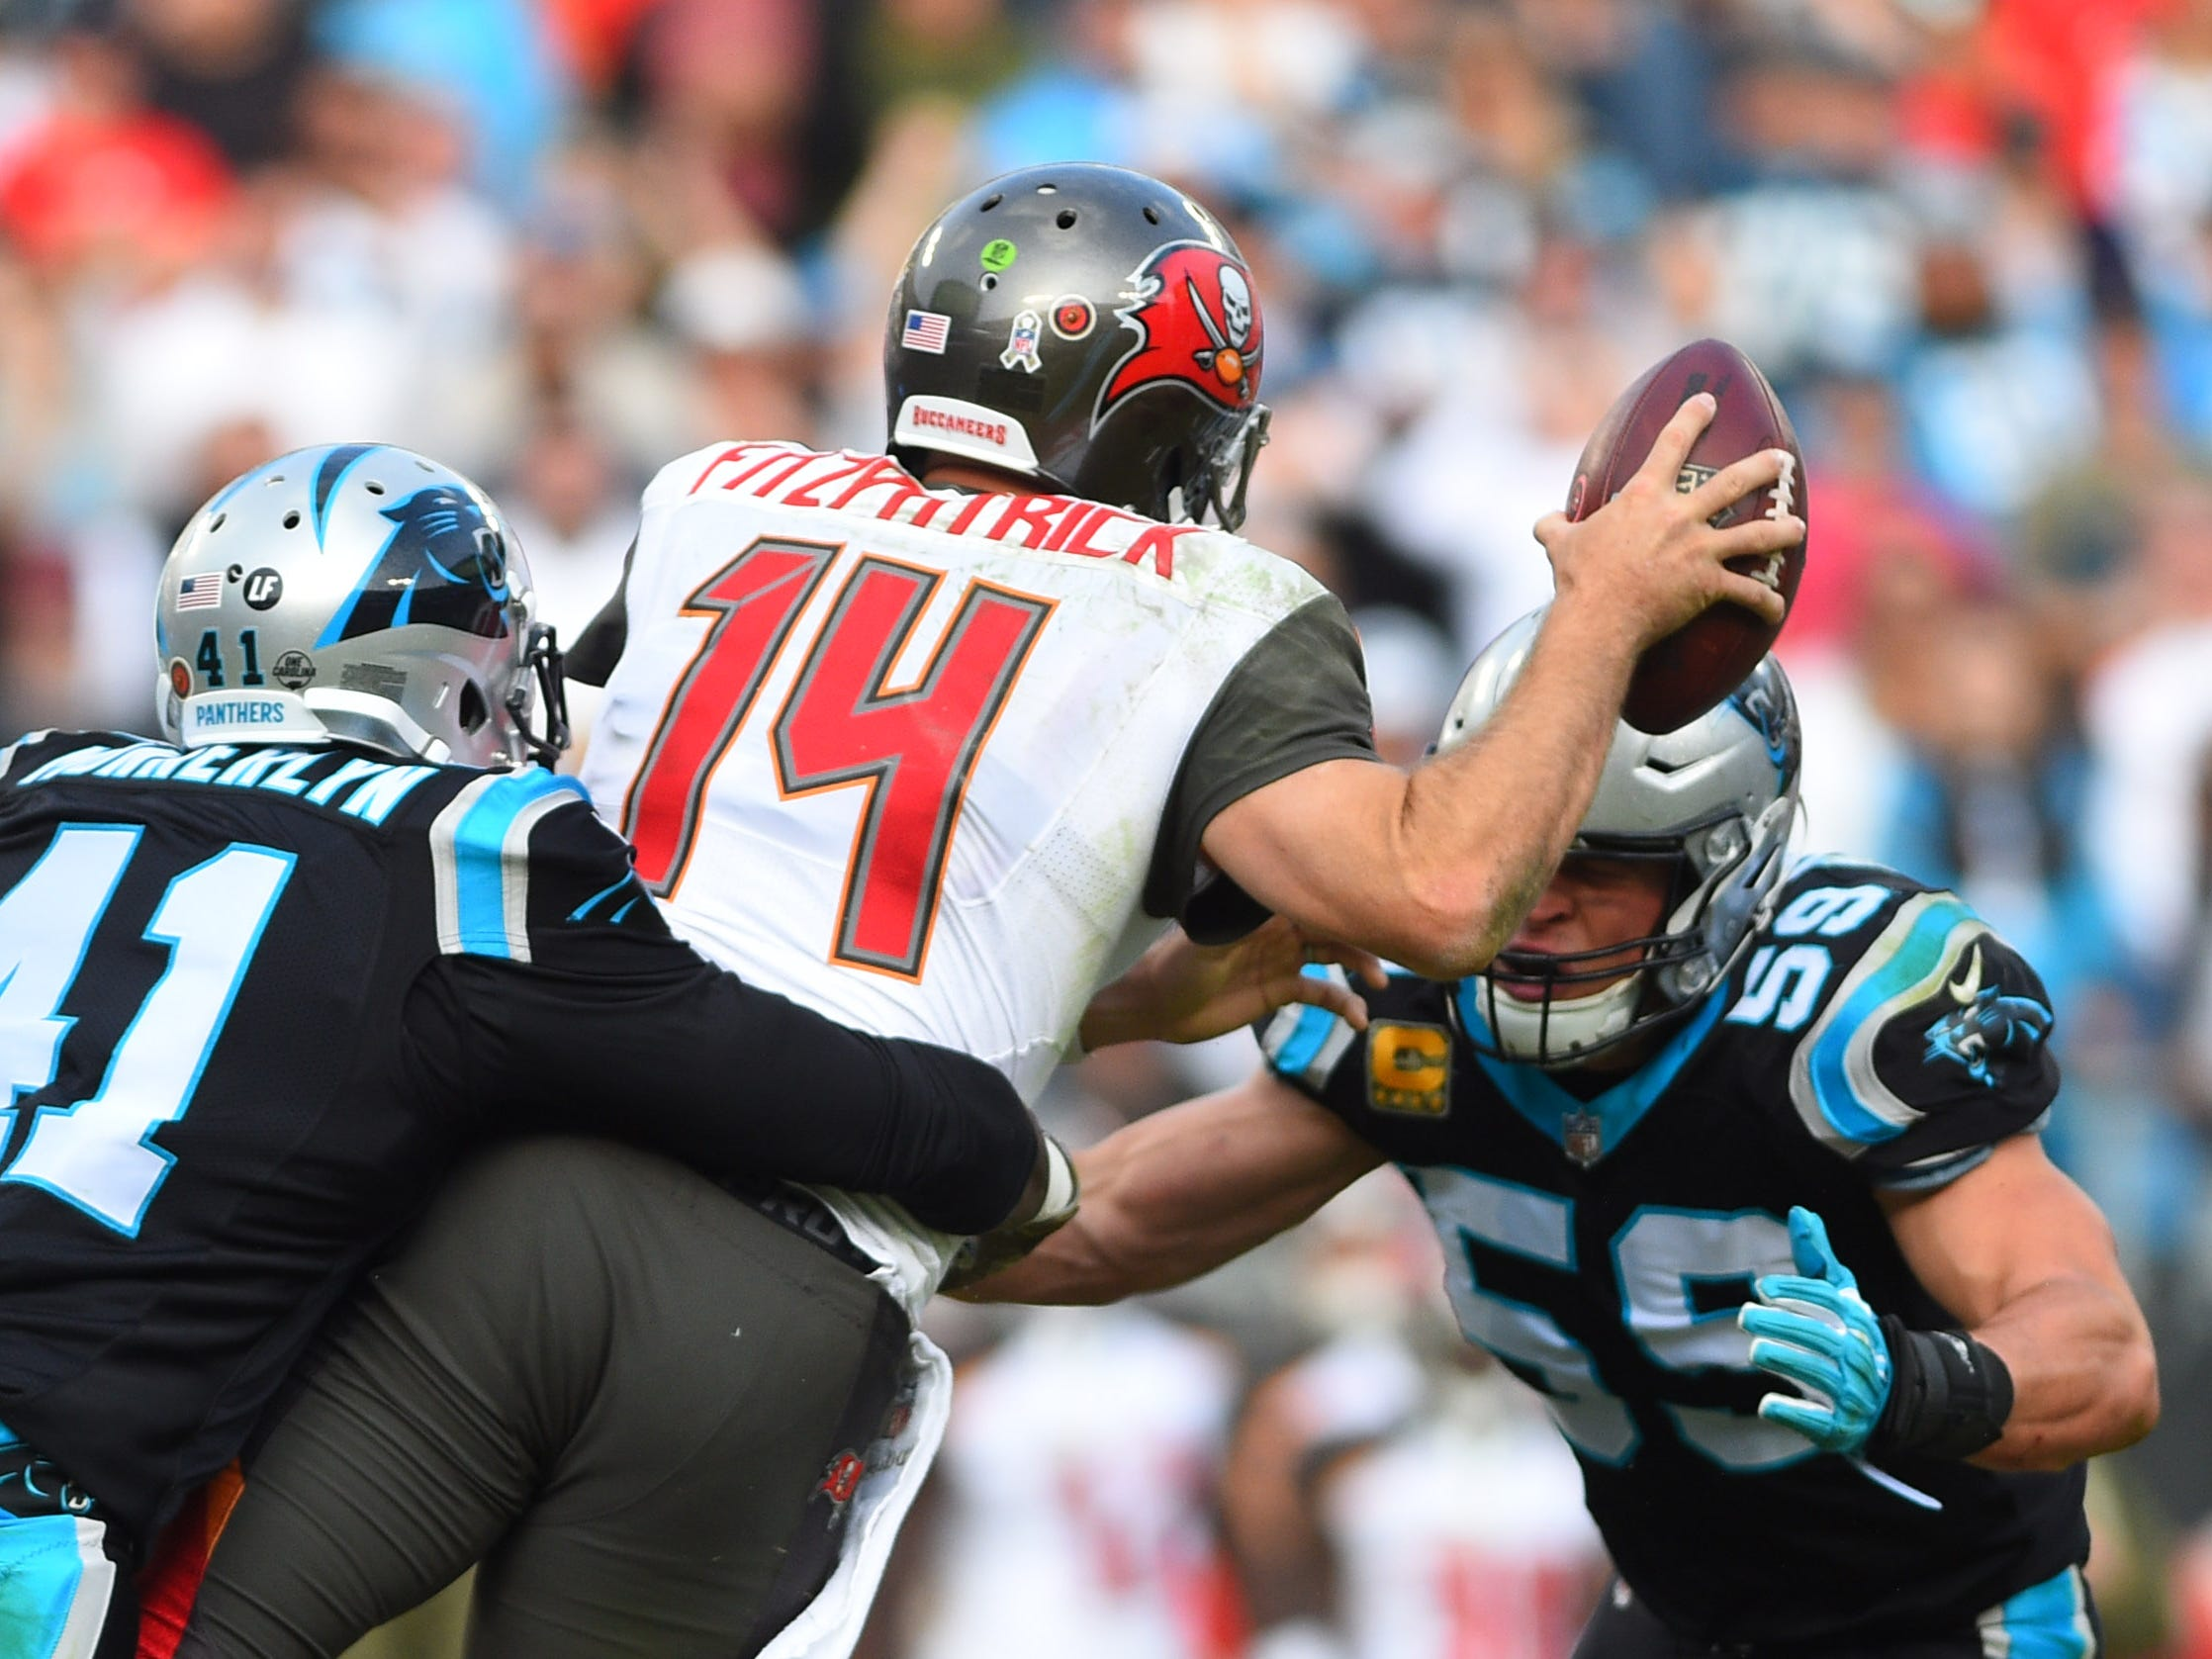 Carolina Panthers defensive back Captain Munnerlyn (41) and middle linebacker Luke Kuechly (59) close in on Tampa Bay Buccaneers quarterback Ryan Fitzpatrick (14) in the fourth quarter at Bank of America Stadium.